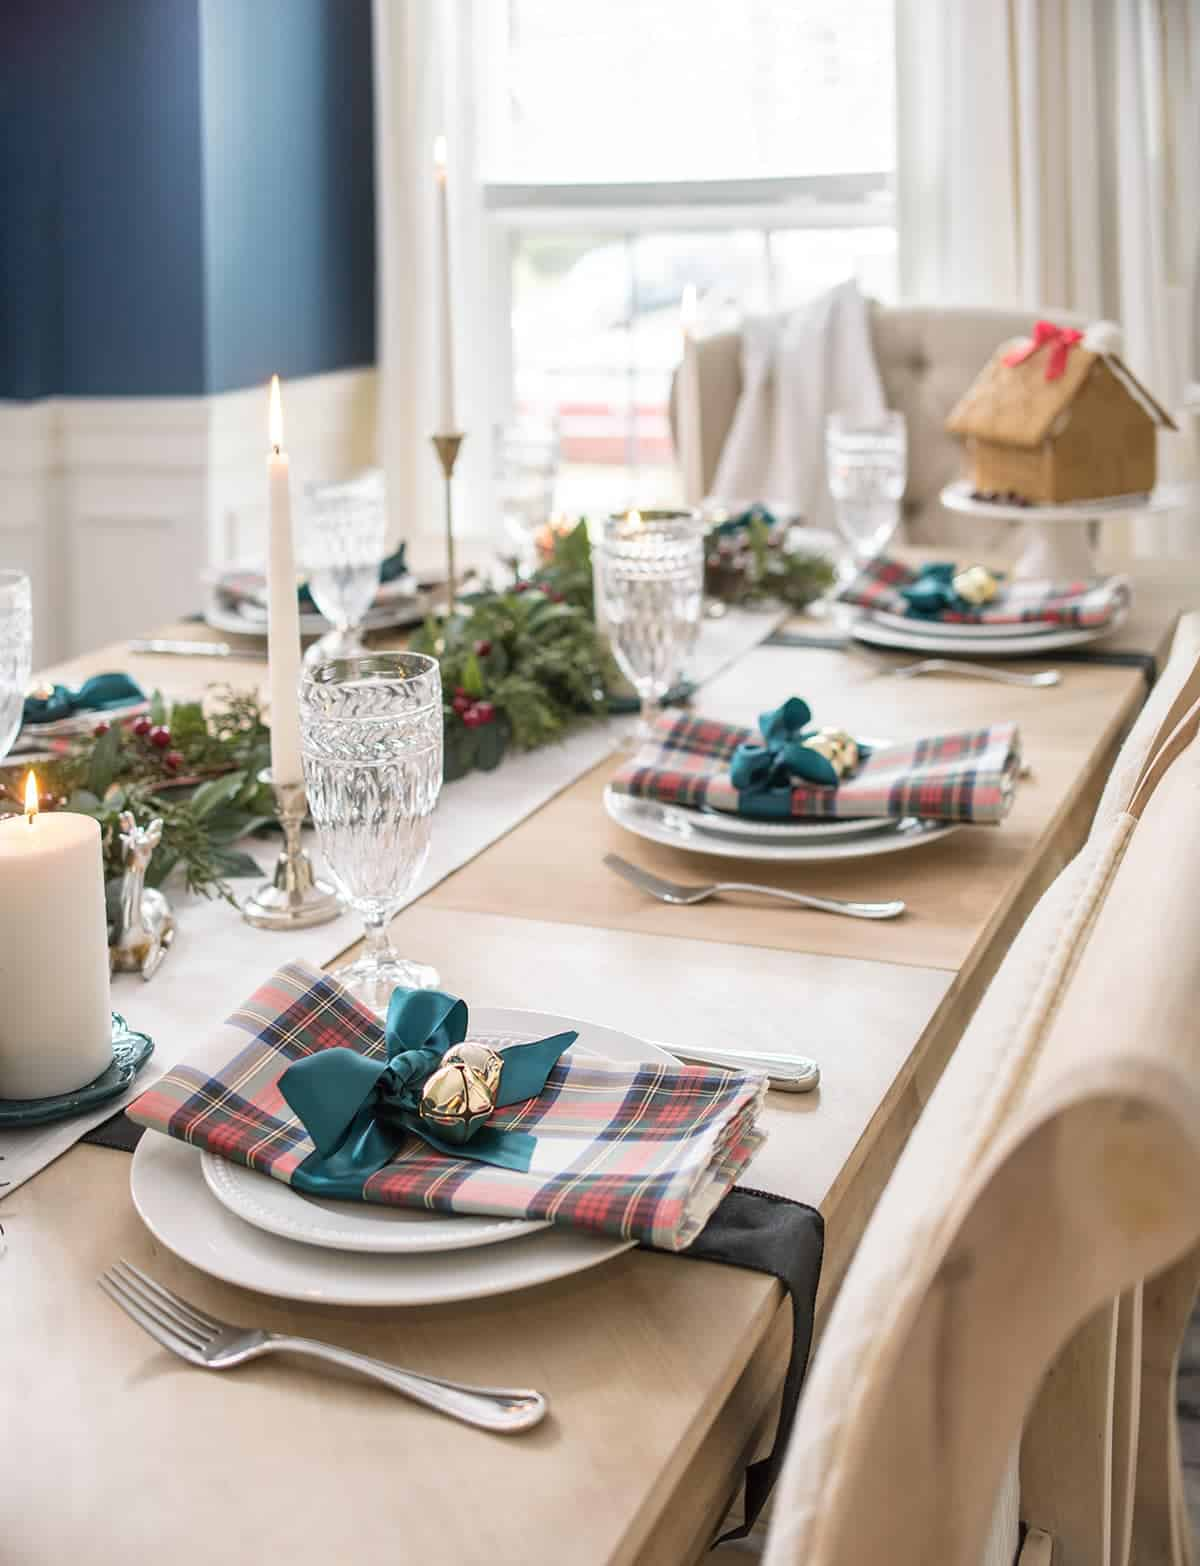 Christmas Plaid Table Settings - scottish tartan